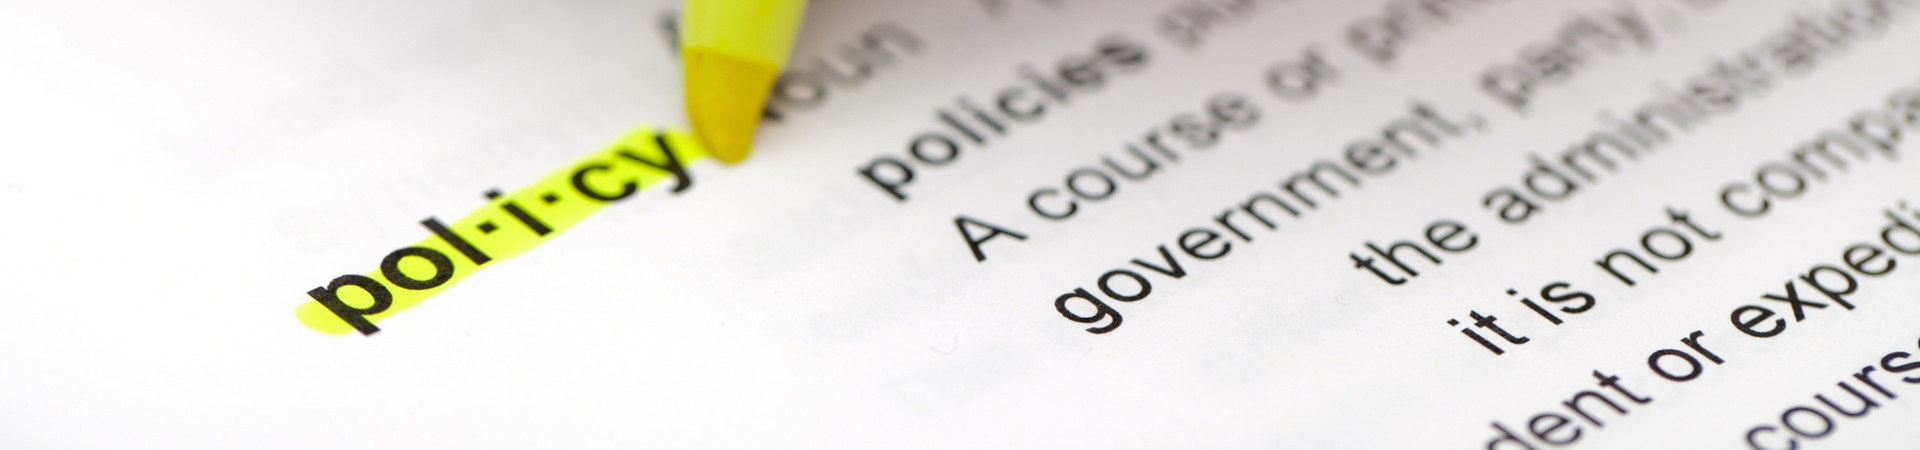 Background: Policy Highlight